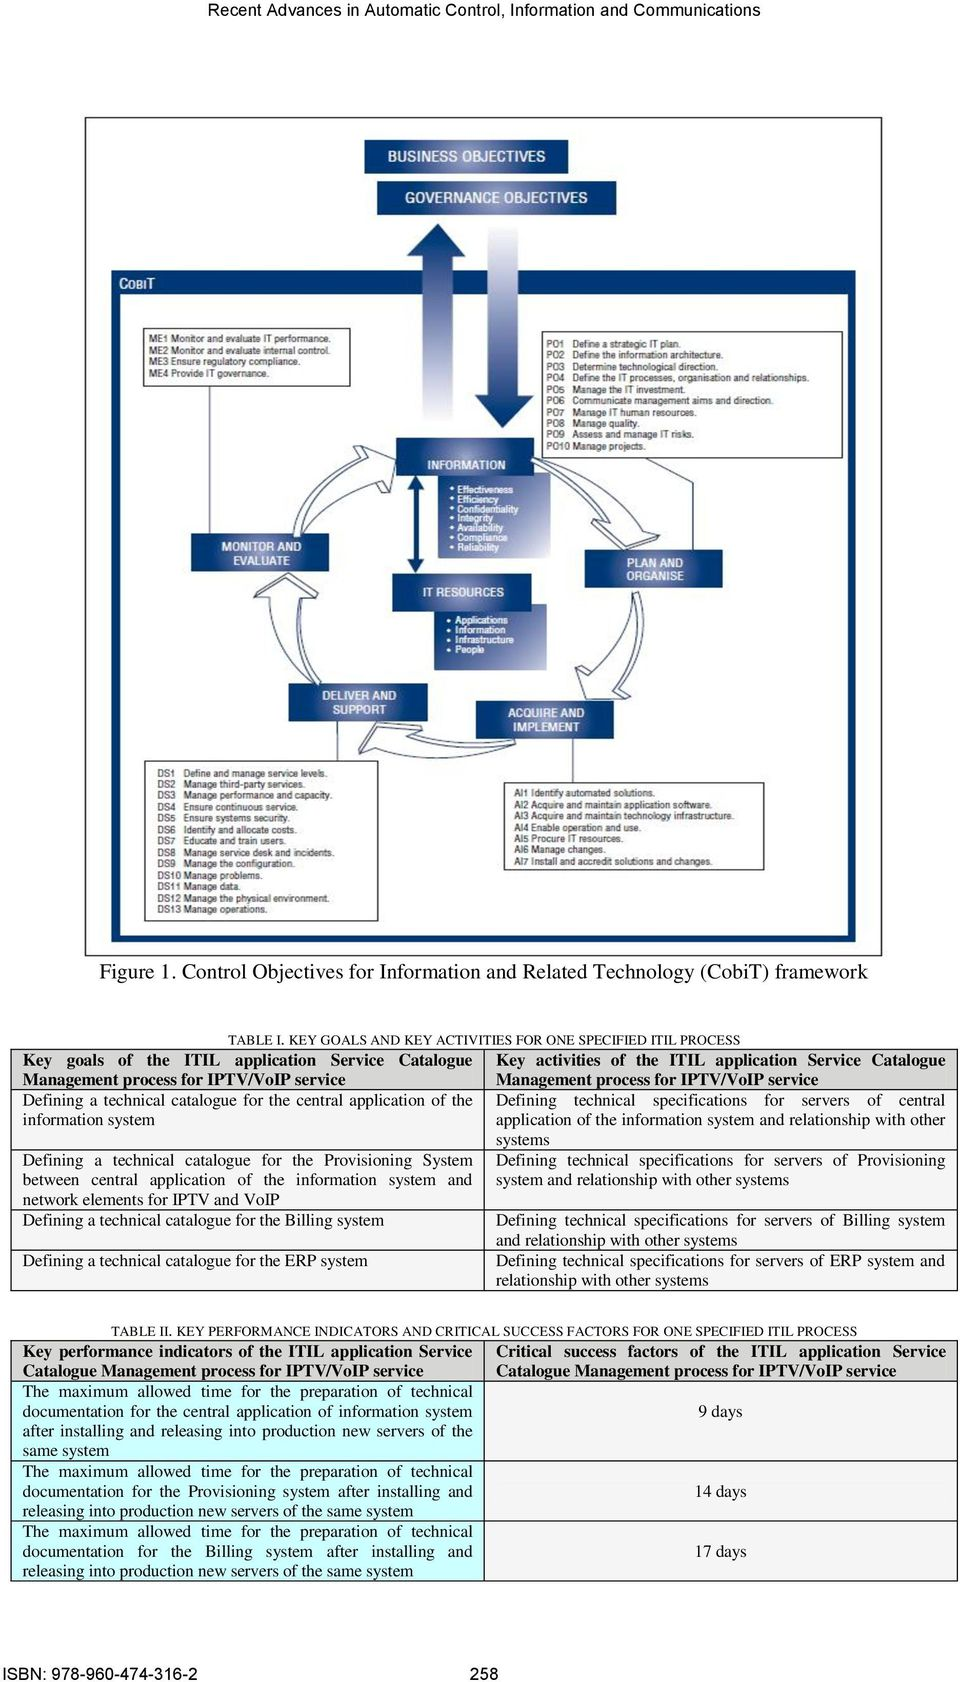 Management process for Defining a technical catalogue for the central application of the Defining technical specifications for servers of central information system application of the information